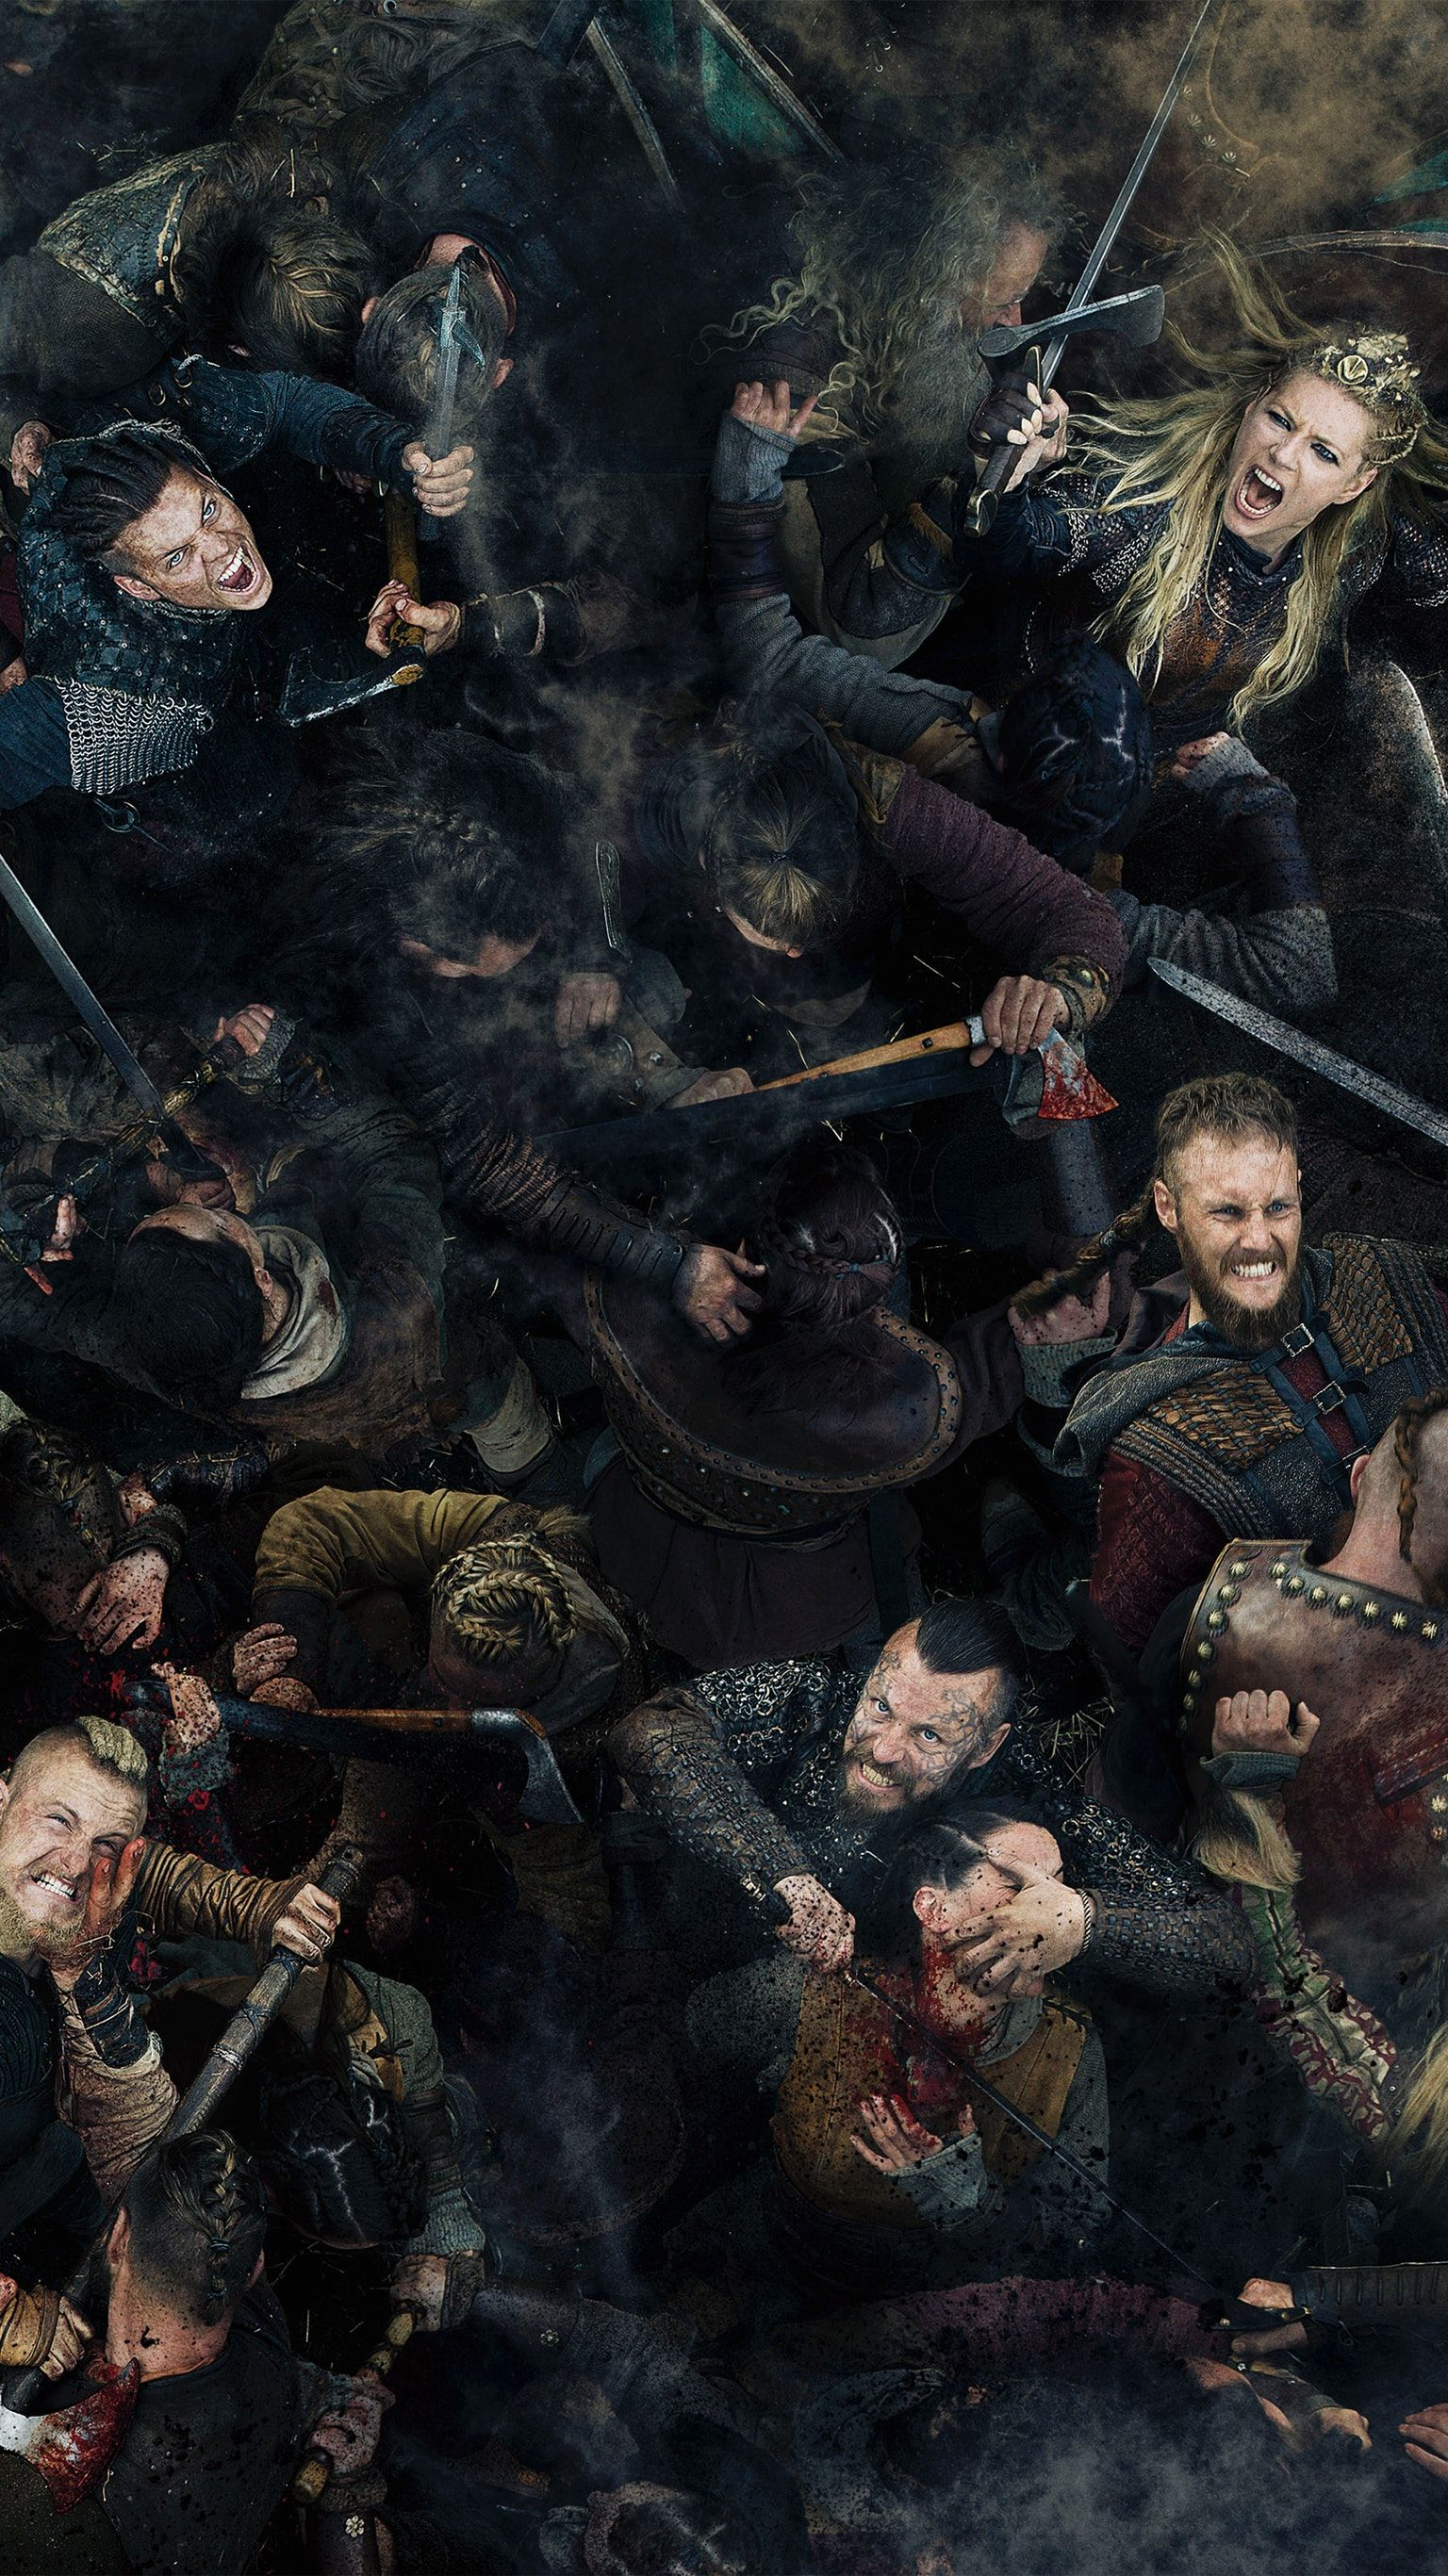 A Gallery Of Vikings Publicity Stills And Other Photos Featuring Travis Fimmel Katheryn Winnick Alexander Ludwig Clive Standen Others